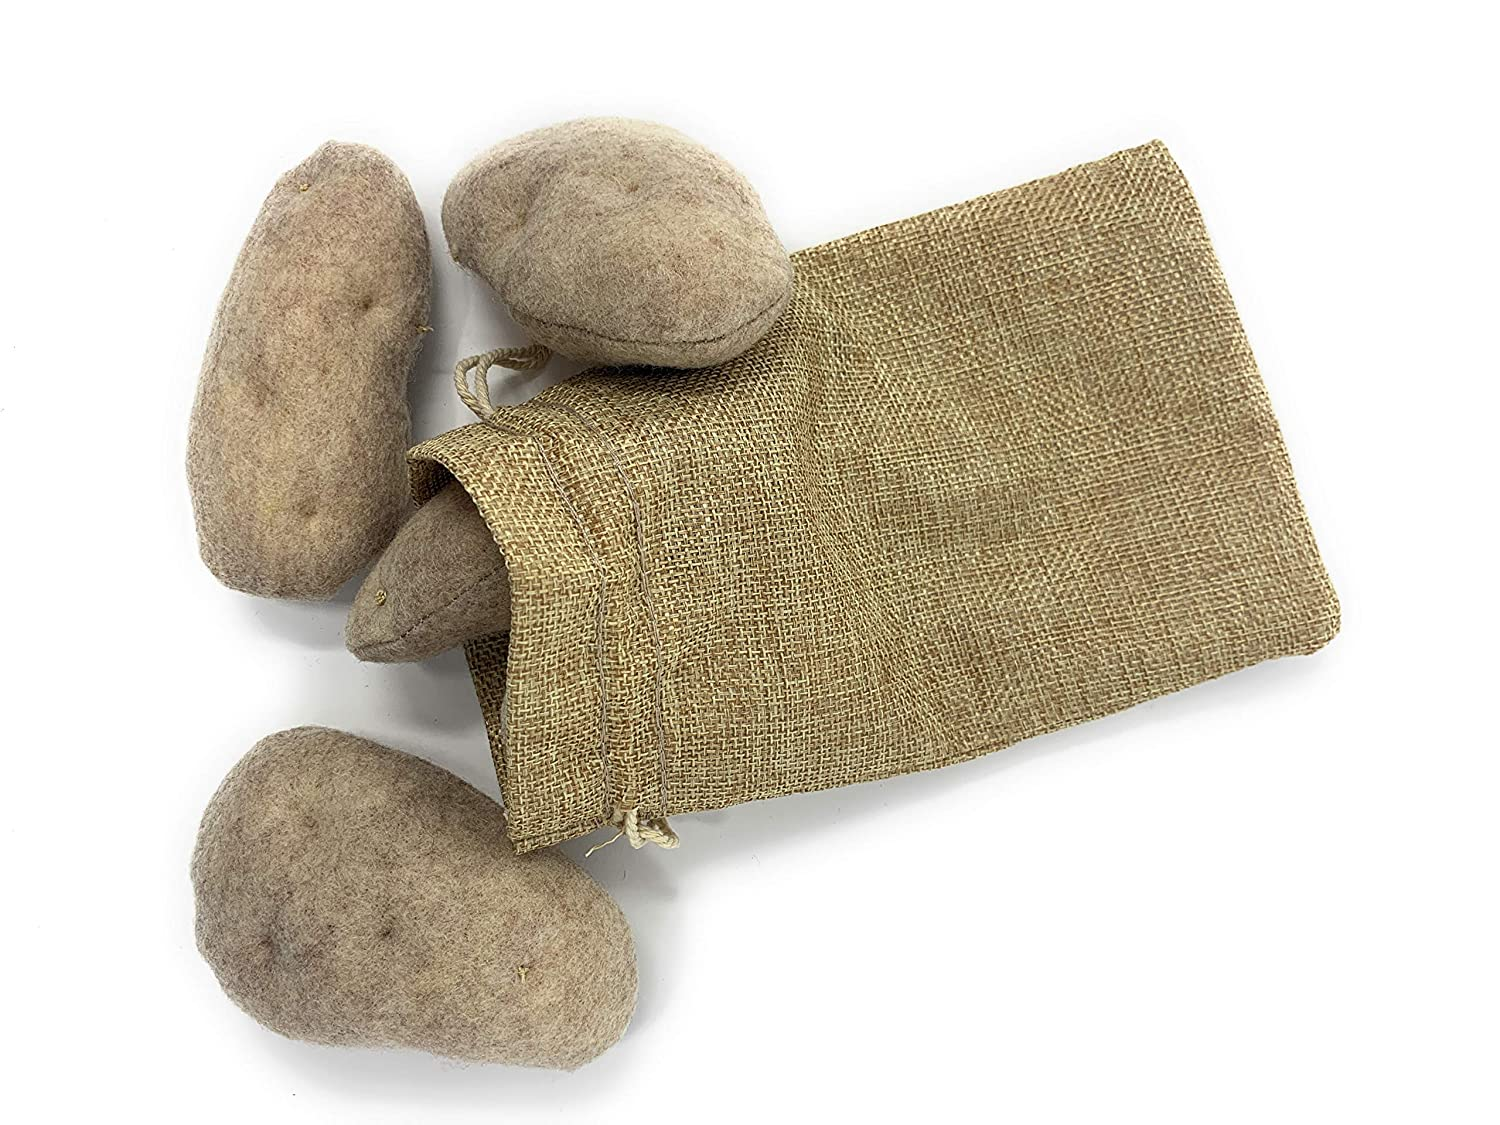 Sack of Felt Potatoes